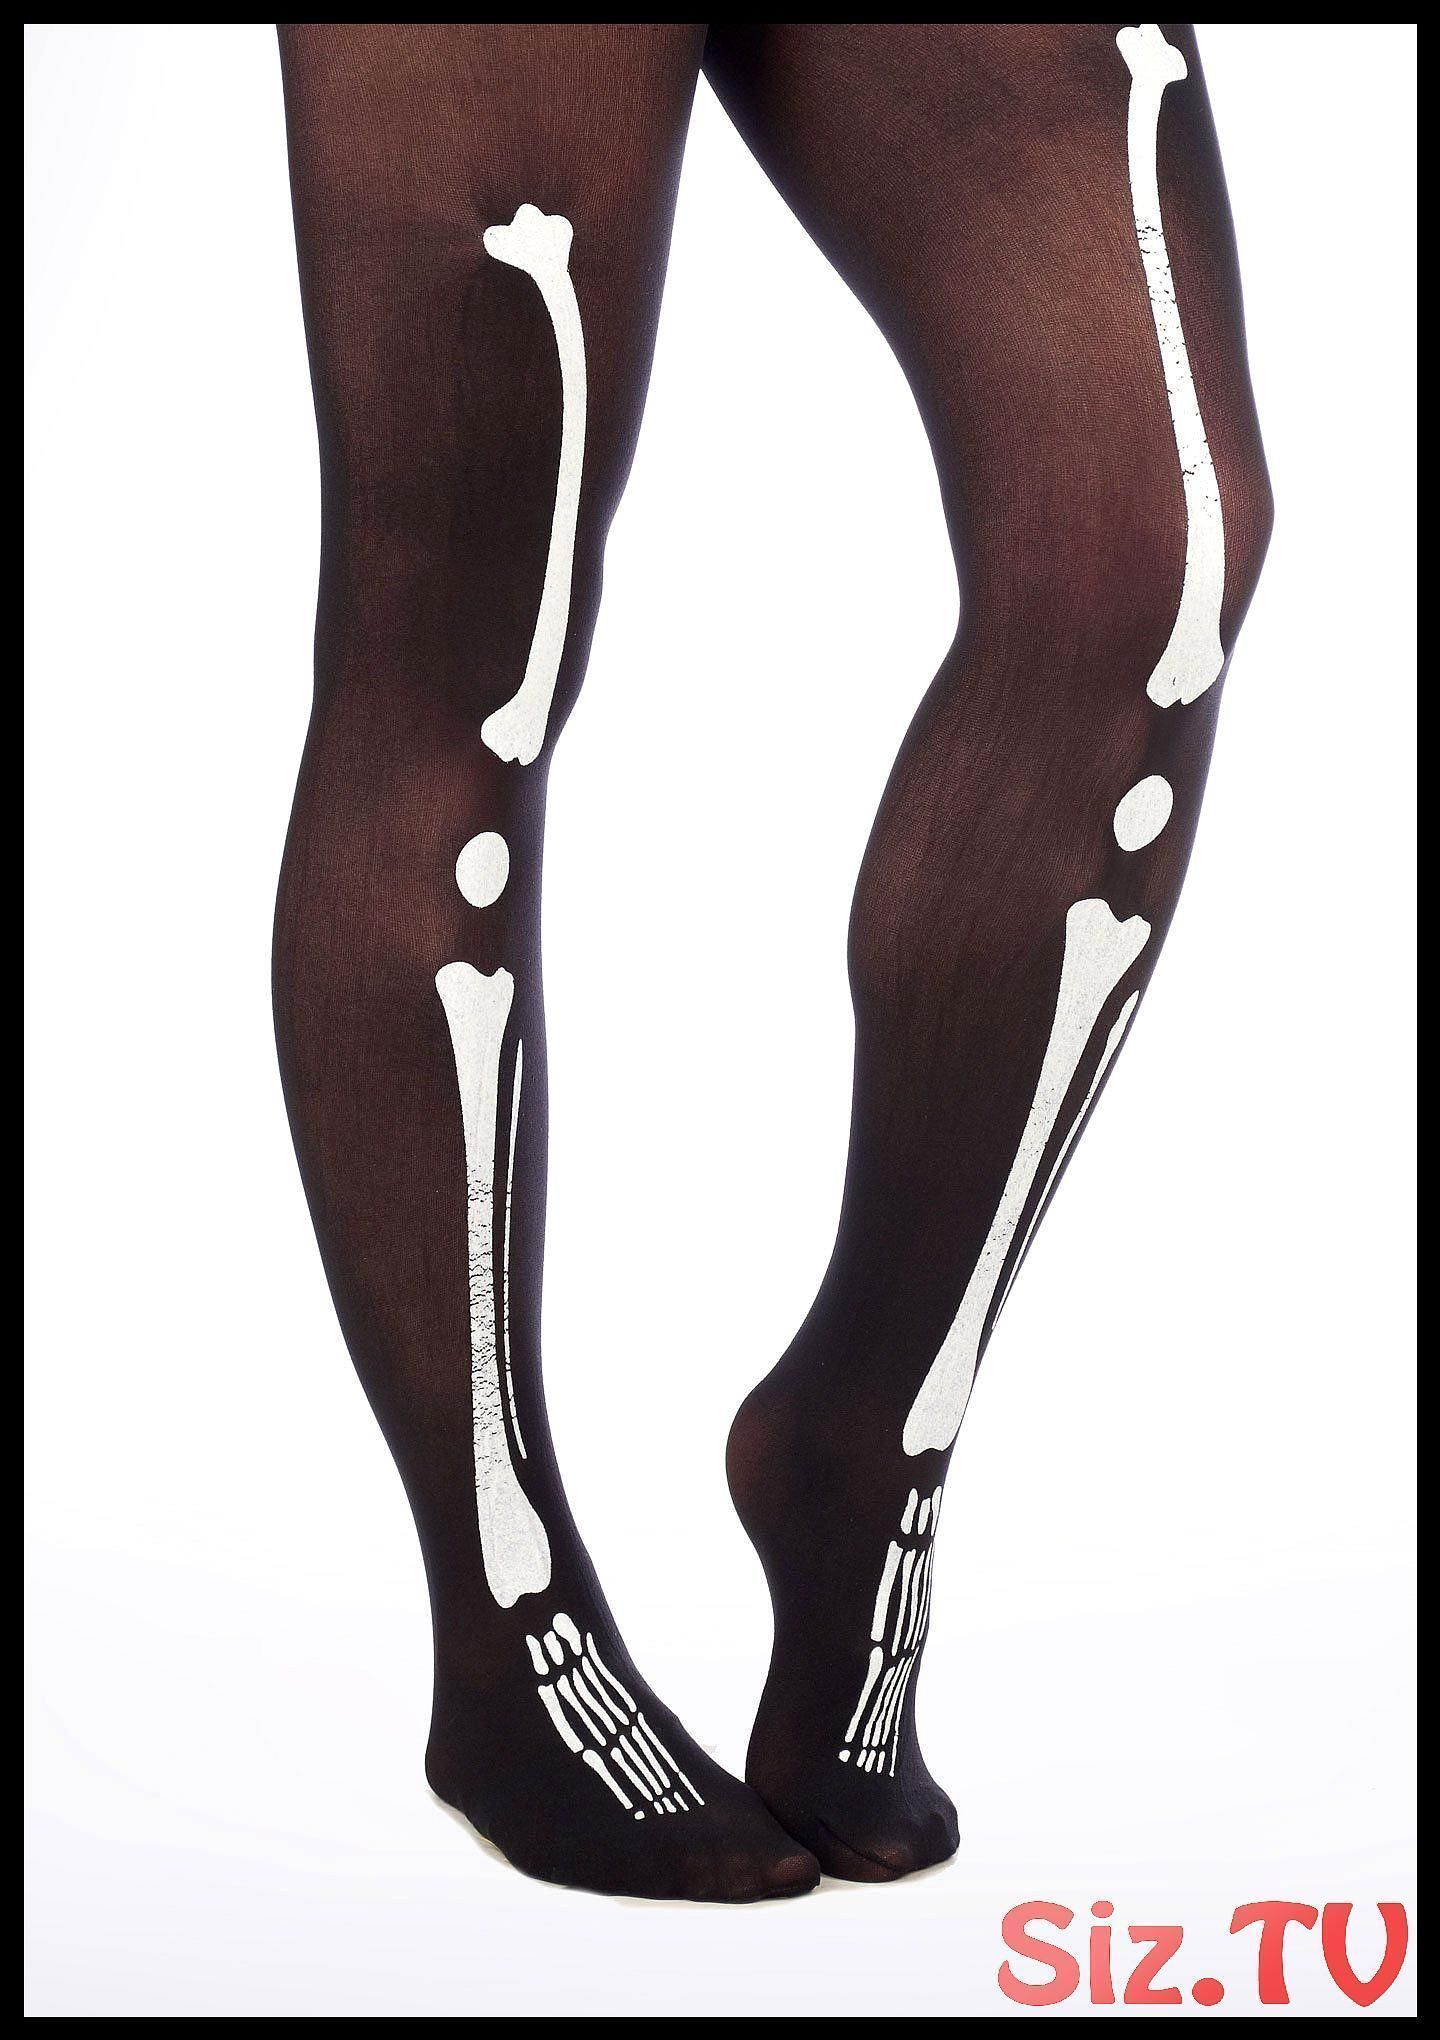 Skeleton Tights Skeleton Tights Great For Creating The Perfect Halloween Costume Wear With The Bloch Belle Tutu Bl R2921 And The Bloch Macie Leotard Bl L6106 For A Spooky Outfit Adult One Size Fits Most Due To Hygiene Reasons Tights And Socks In Opened Packaging Are Non Returnable Skeleton Tights Black #leotardsandtightsstockings #skeleton #tights #great #creating #perfect #halloween #costume #wear #with #bloch #belle #tutu #r2921 #macie #leotard #l6106 #spooky #spookyoutfits Skeleton Tights Ske #spookyoutfits